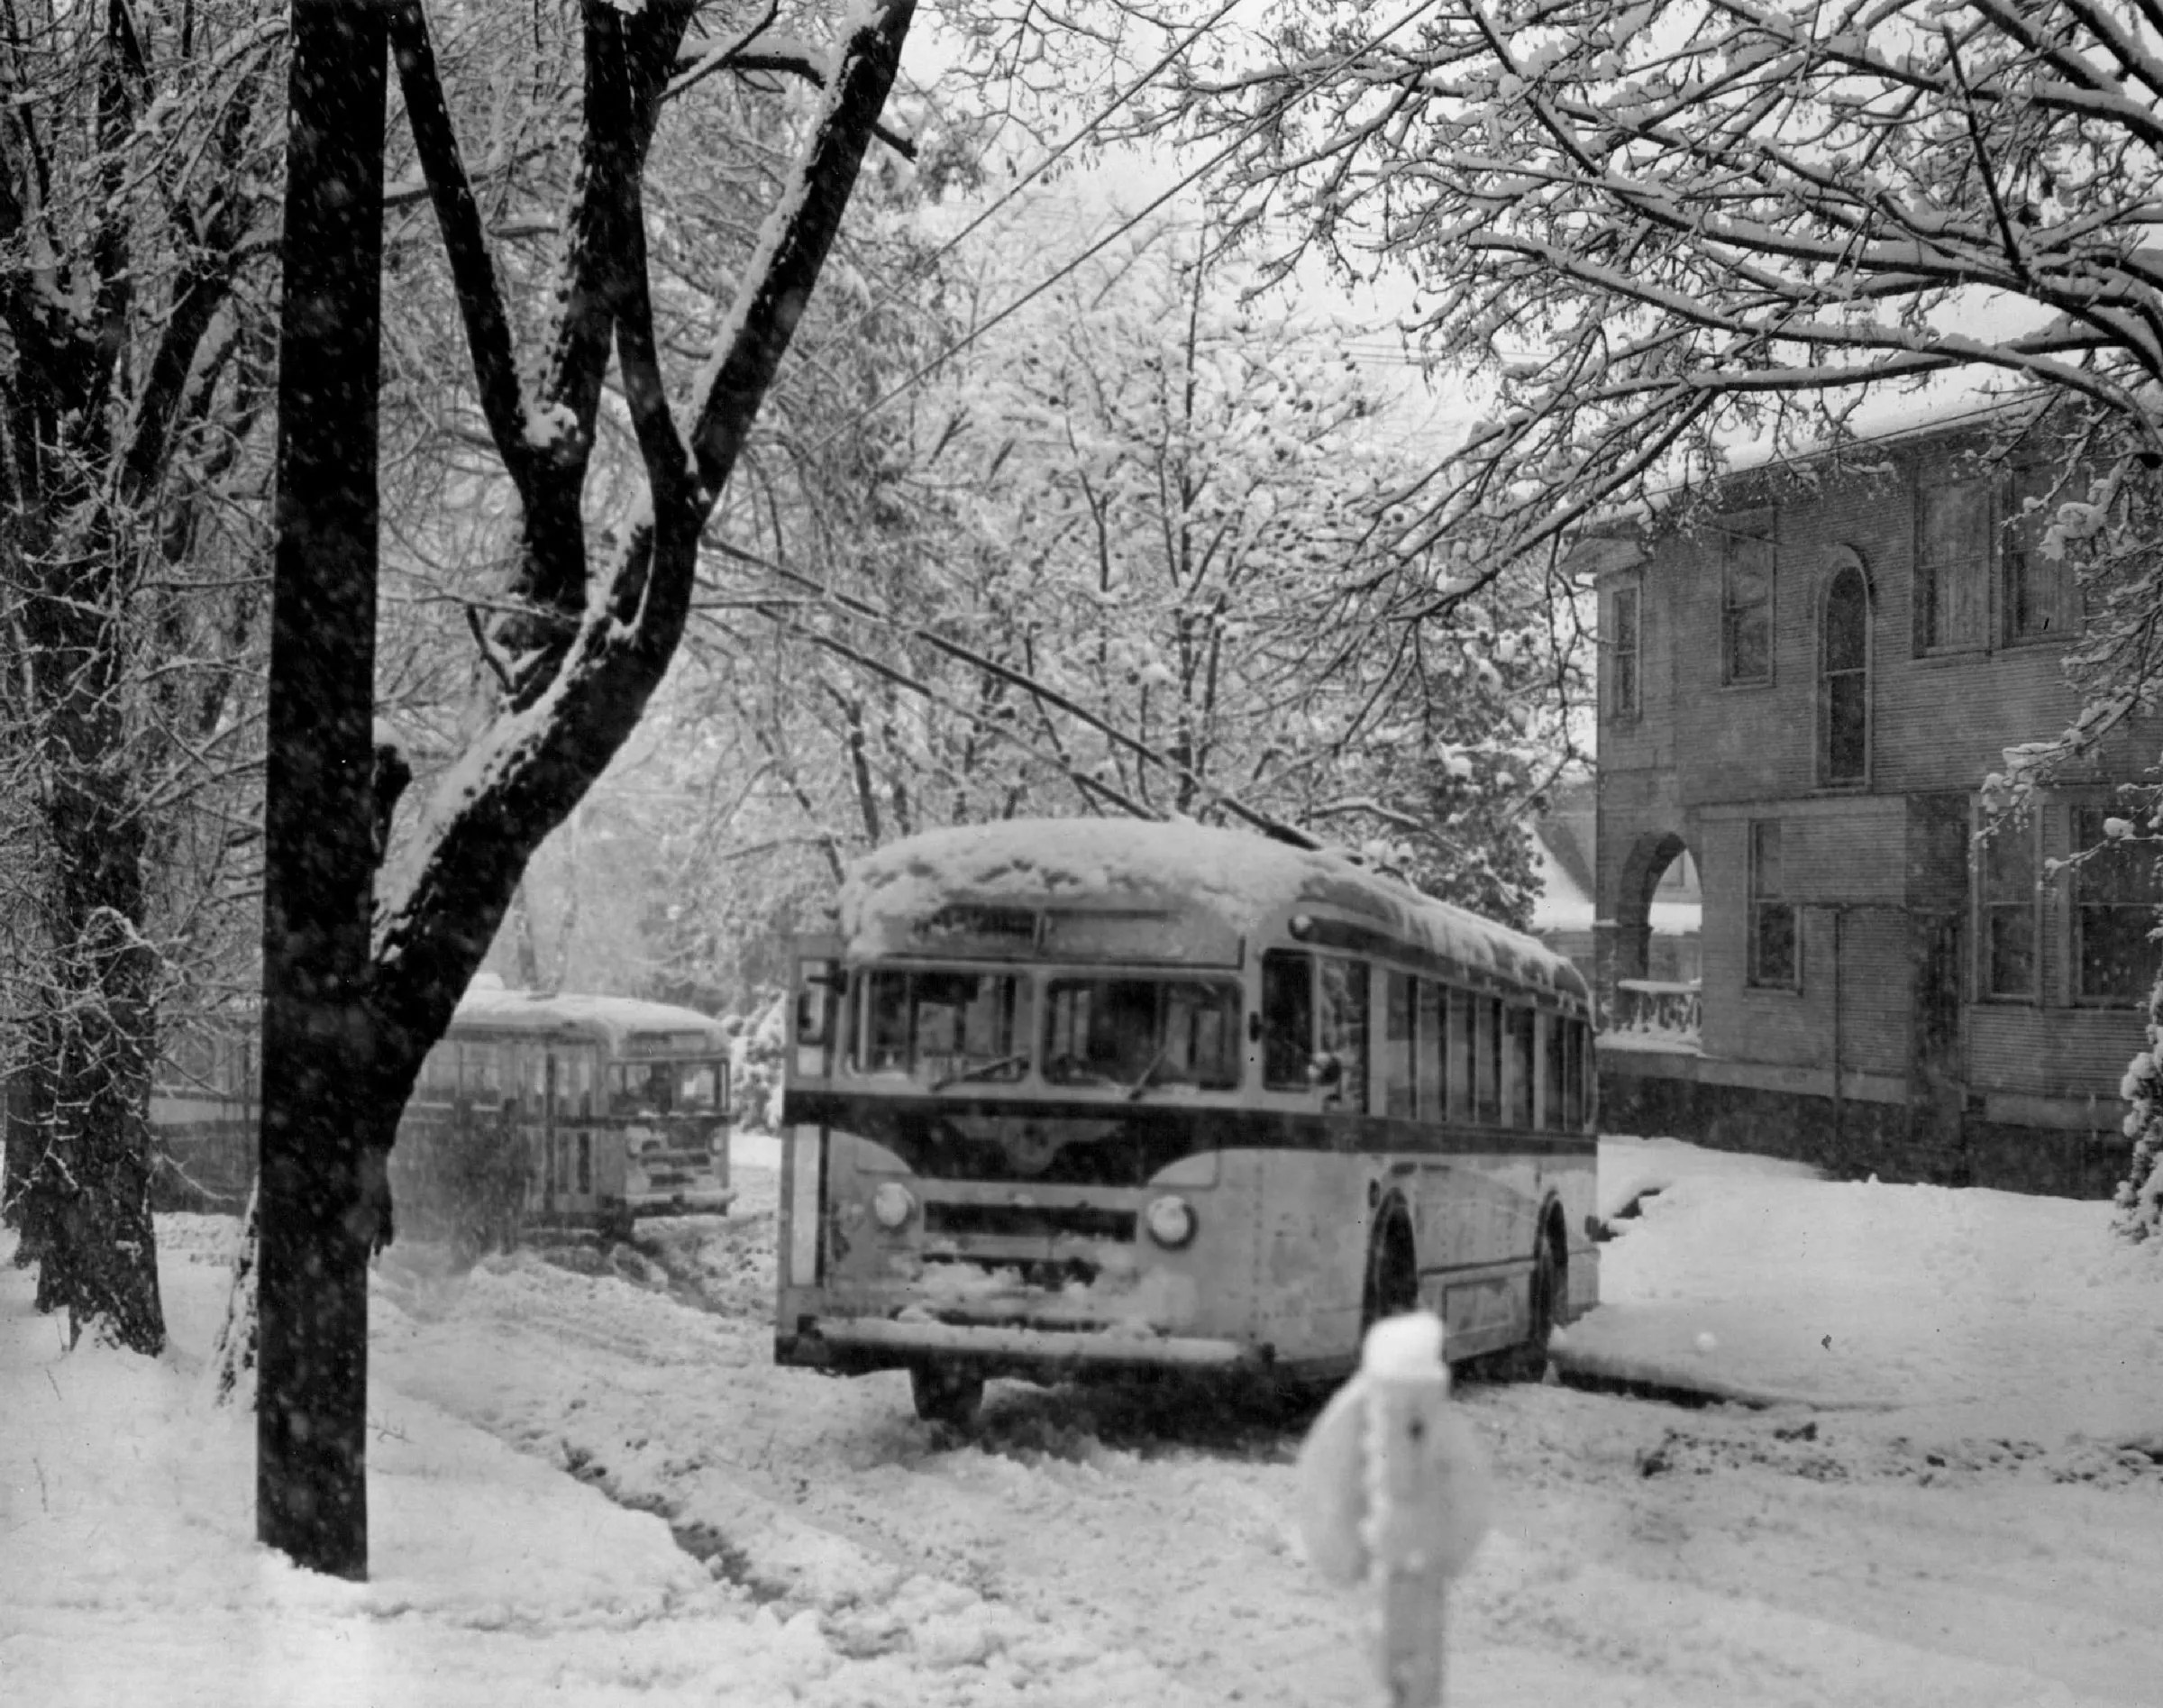 Snowblast from the past Historic Seattle storms in photos and video  The Seattle Times